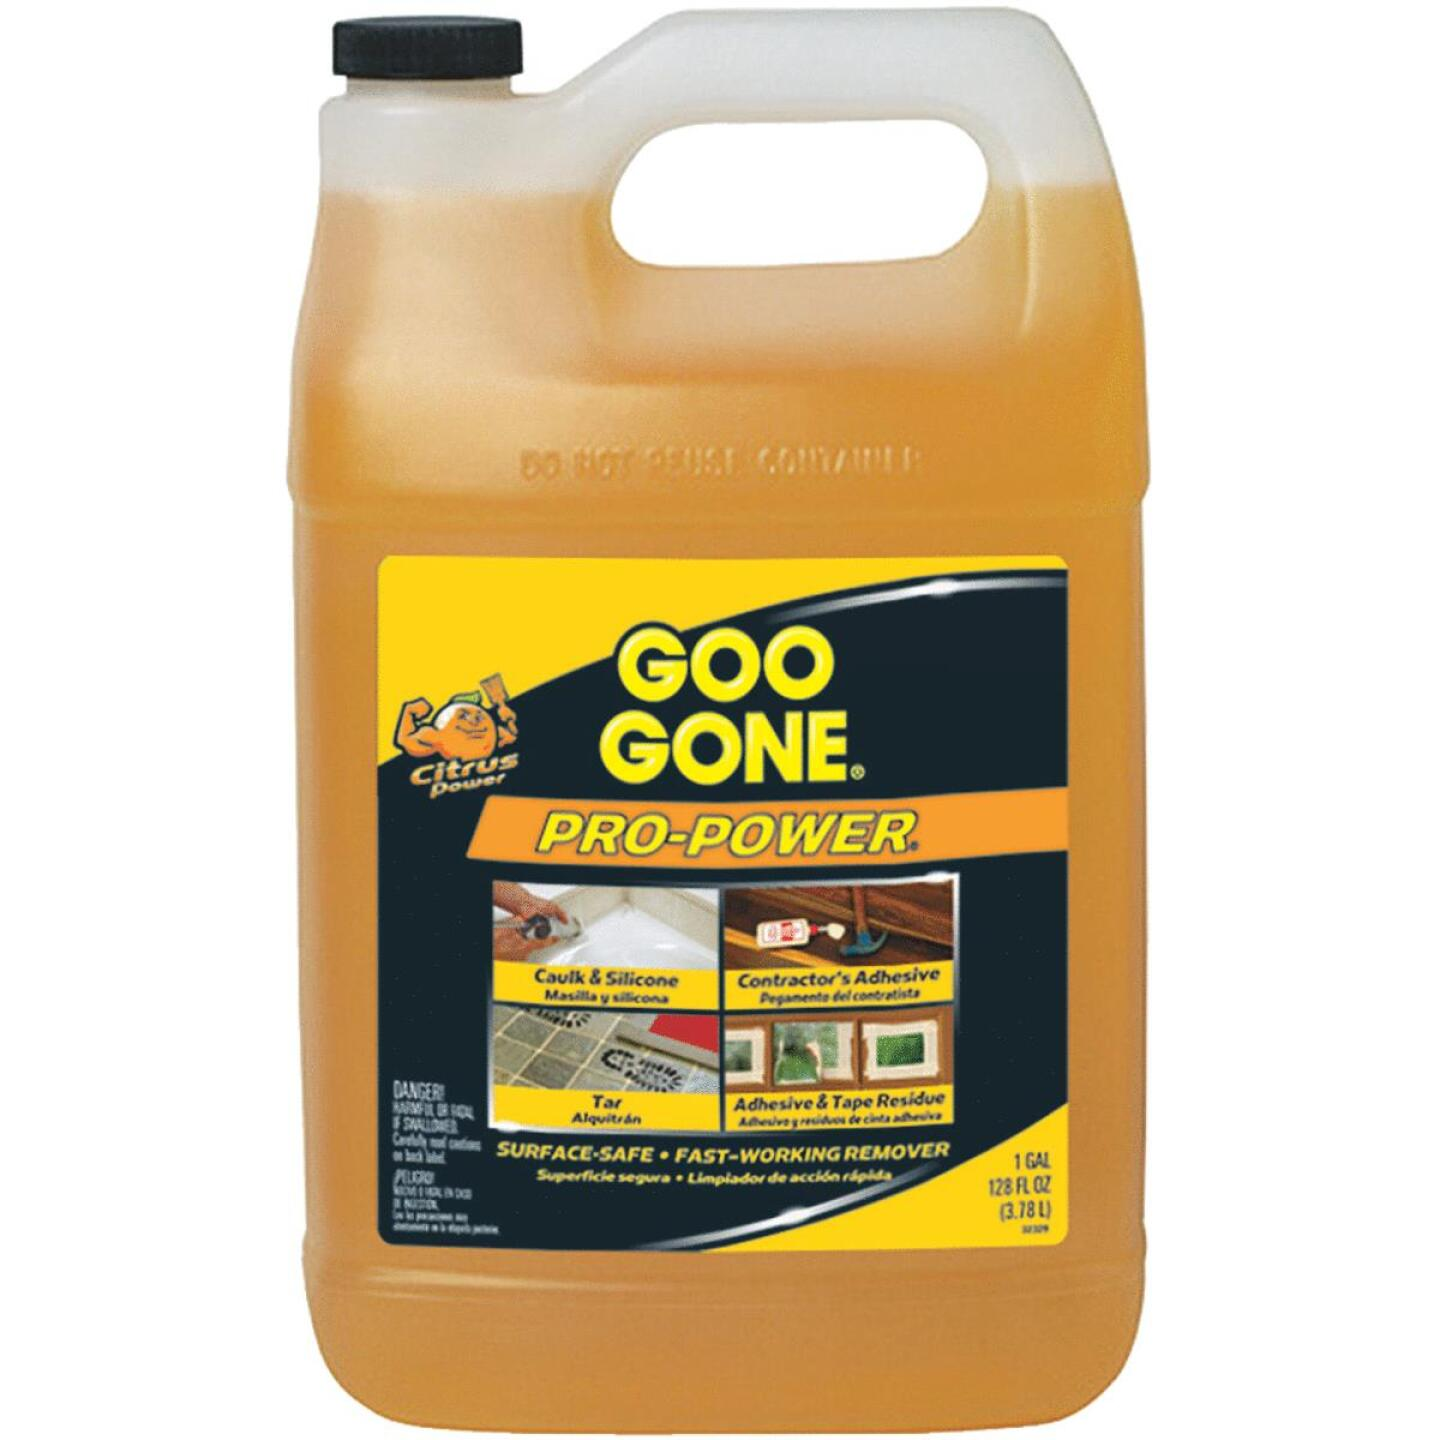 Goo Gone 1 Gal. Pro-Power Adhesive Remover Image 57